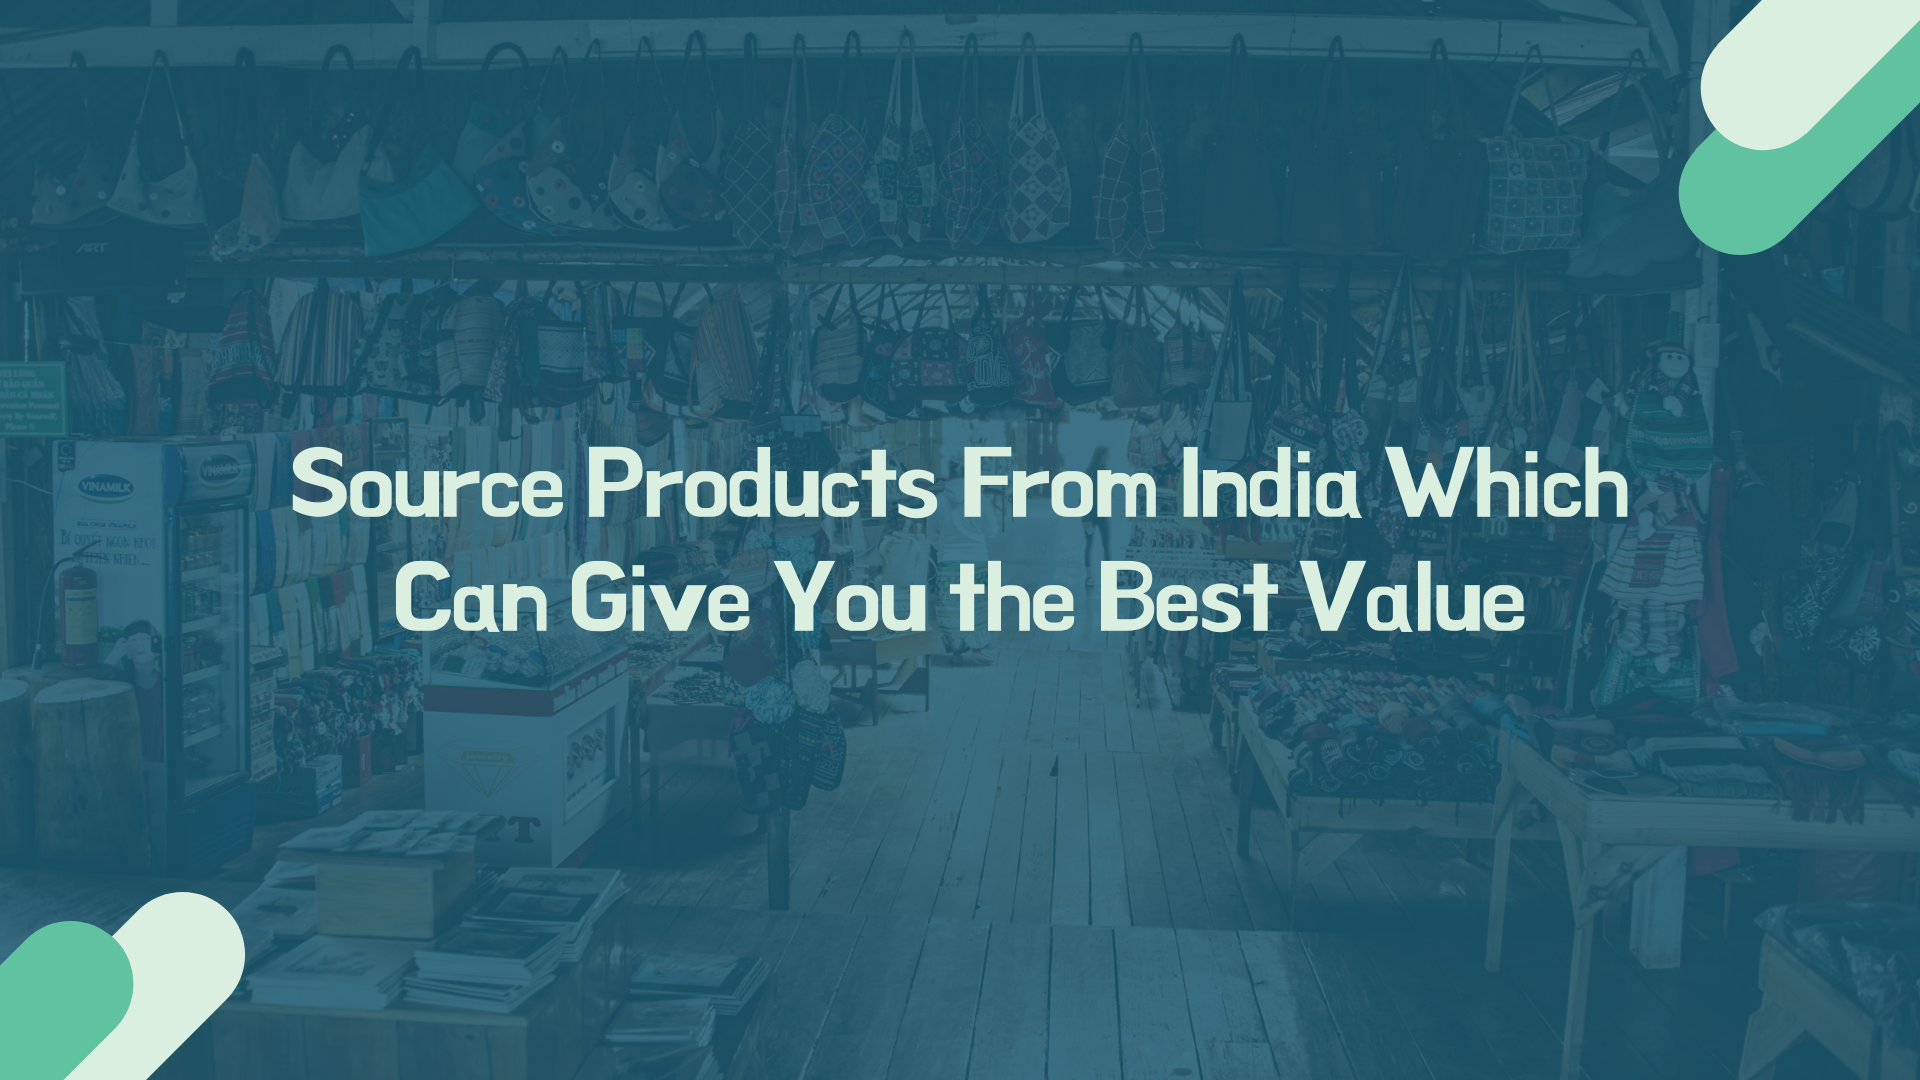 Source Products From India Which Can Give You the Best Value